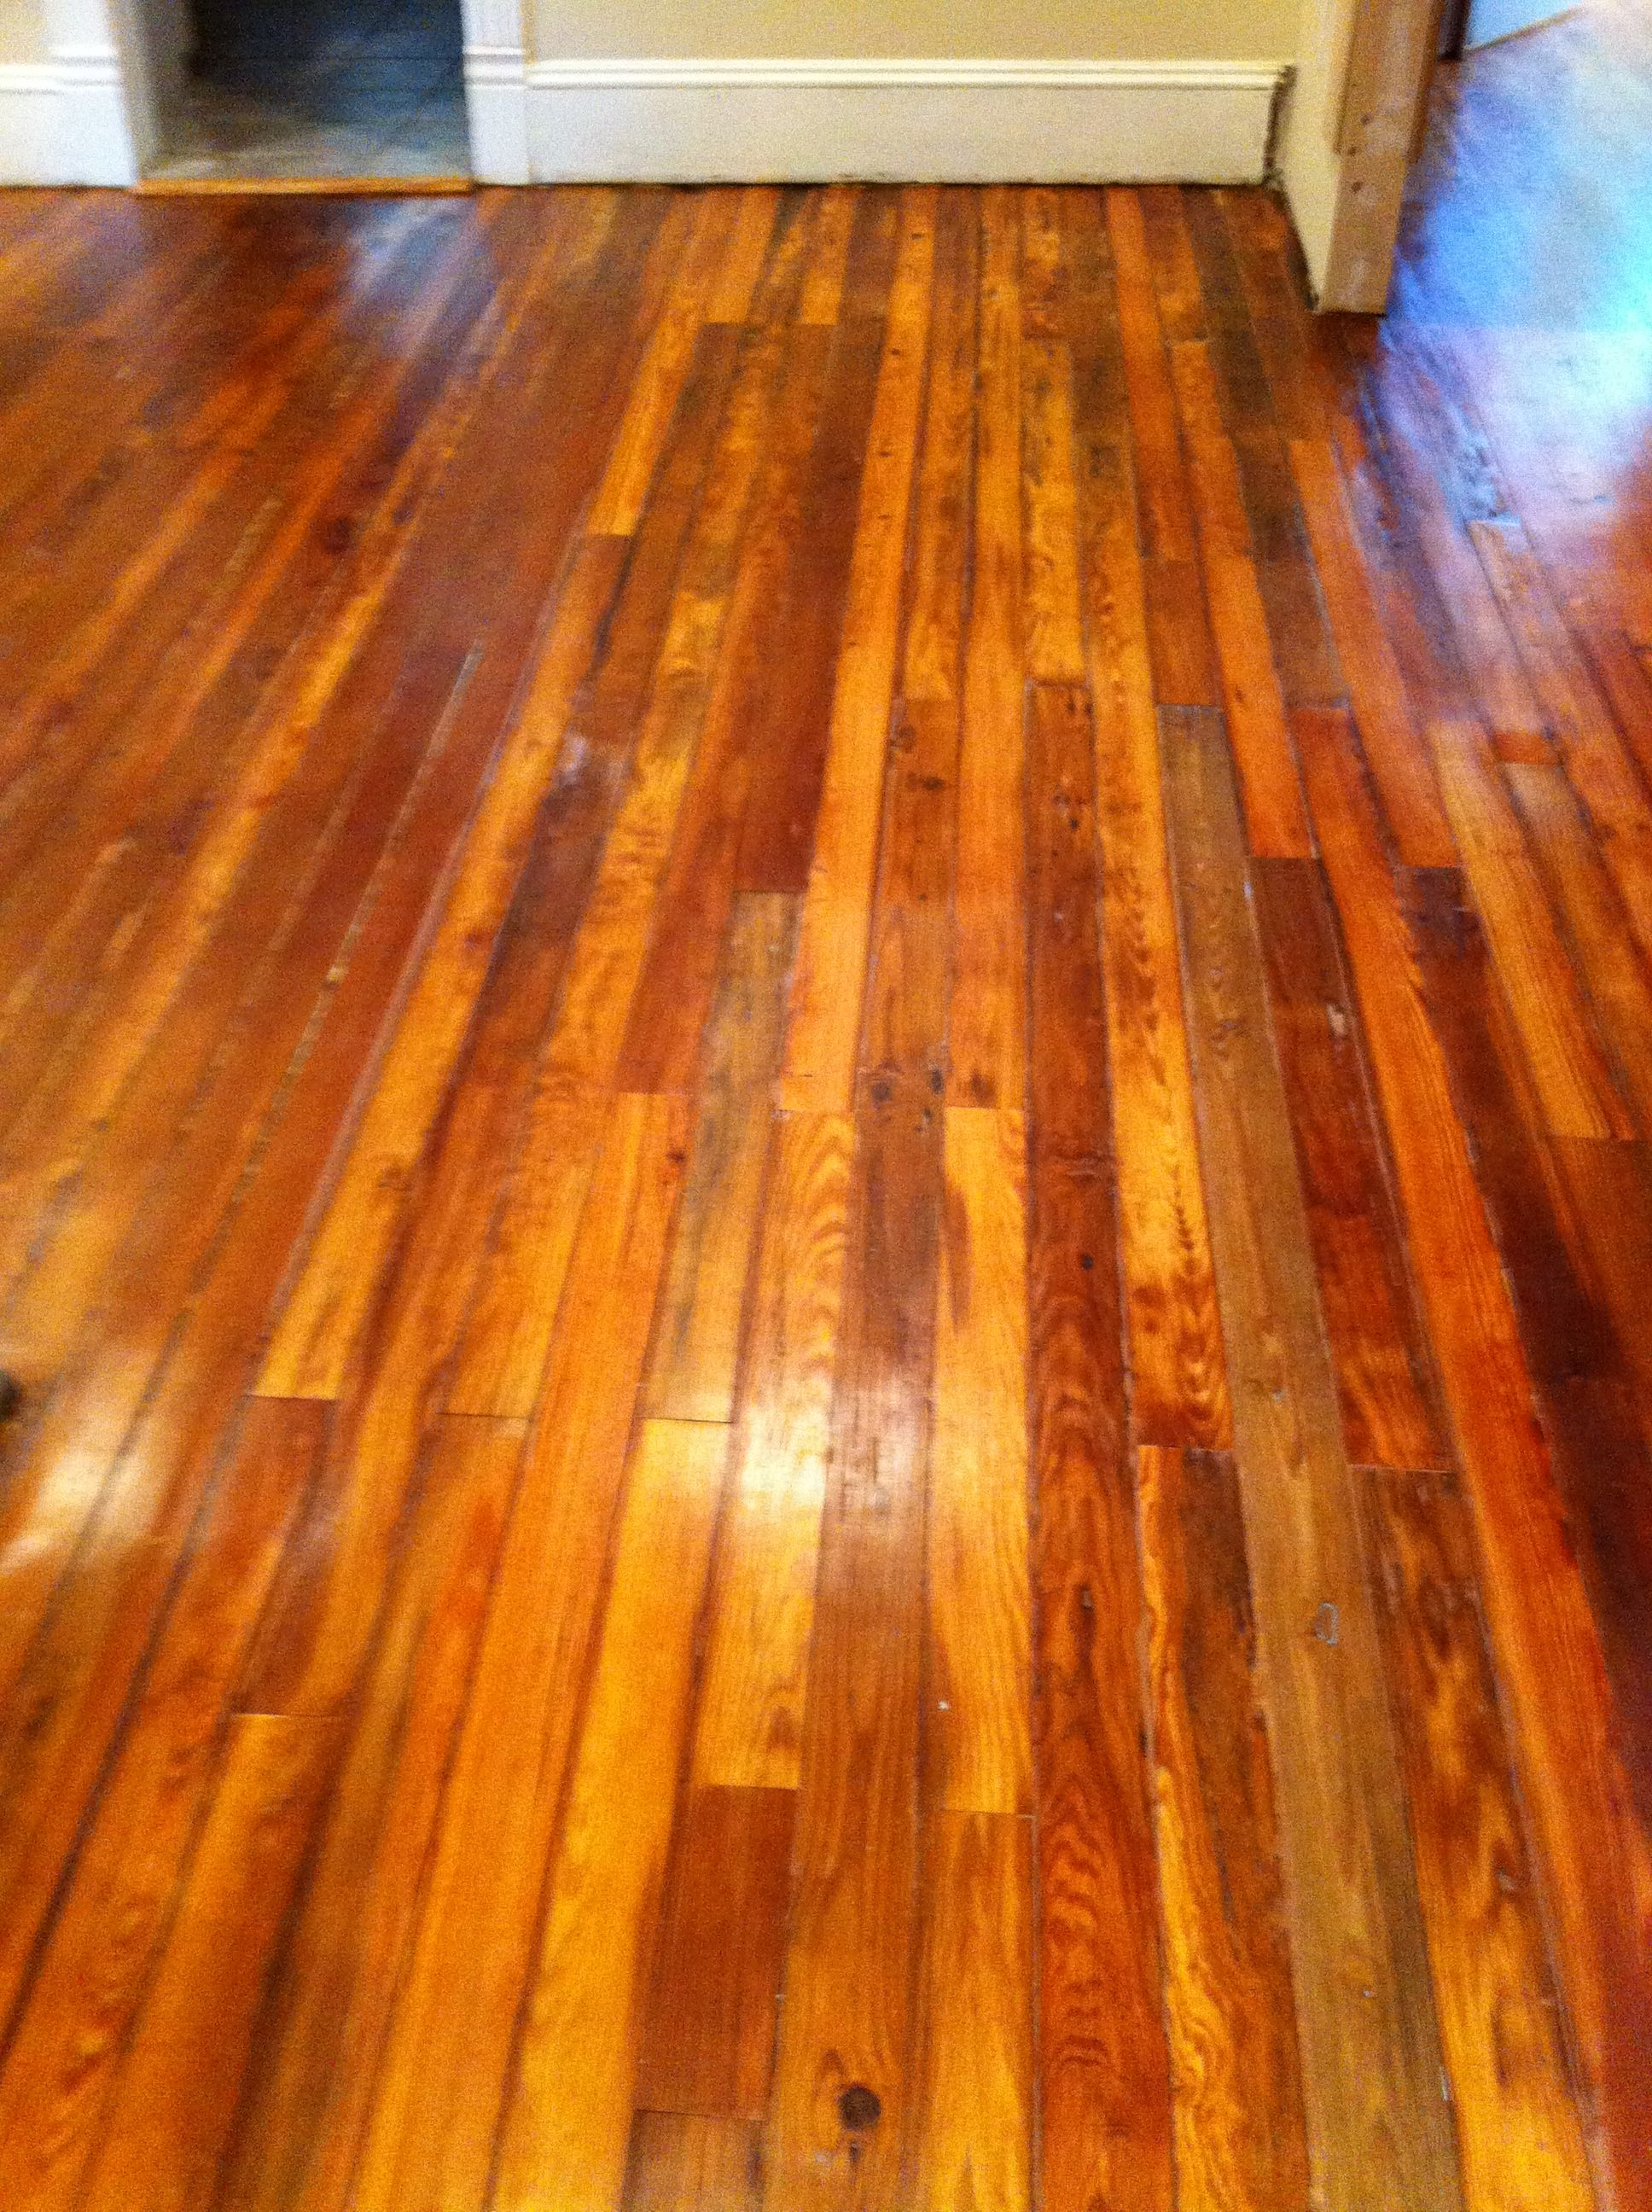 Refinished old yellow pine floors google search for Refinishing painted hardwood floors